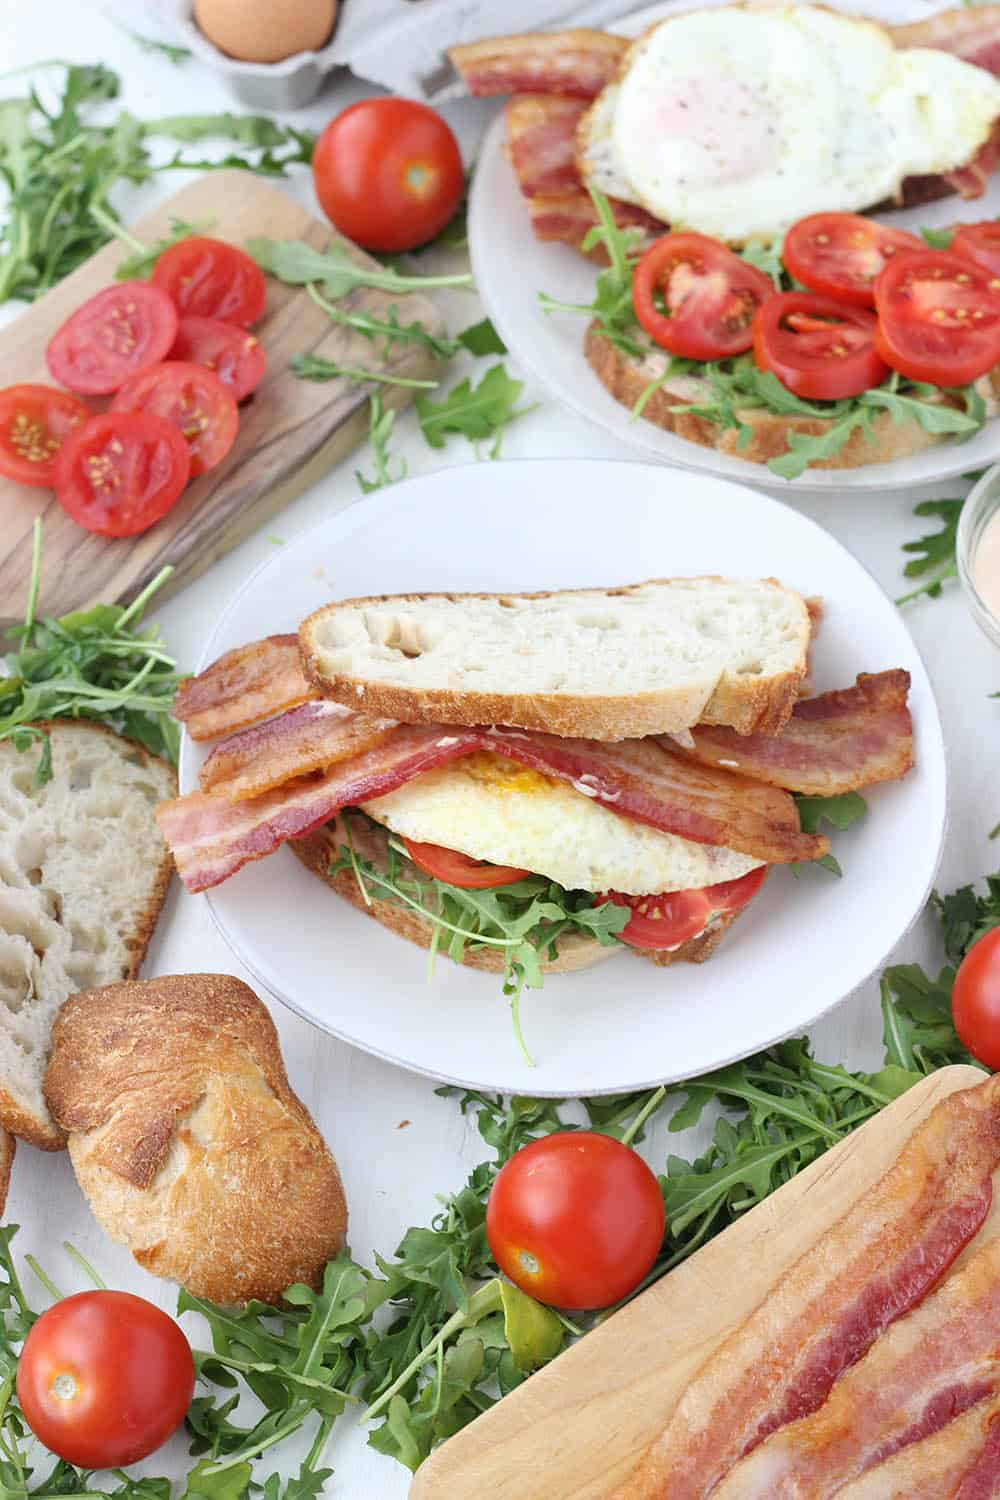 These Breakfast BLTs with Spicy Mayo and Arugula are piled high with thick-cut bacon and a perfectly fried egg! Bake the bacon in the oven to easily make these for a crowd.